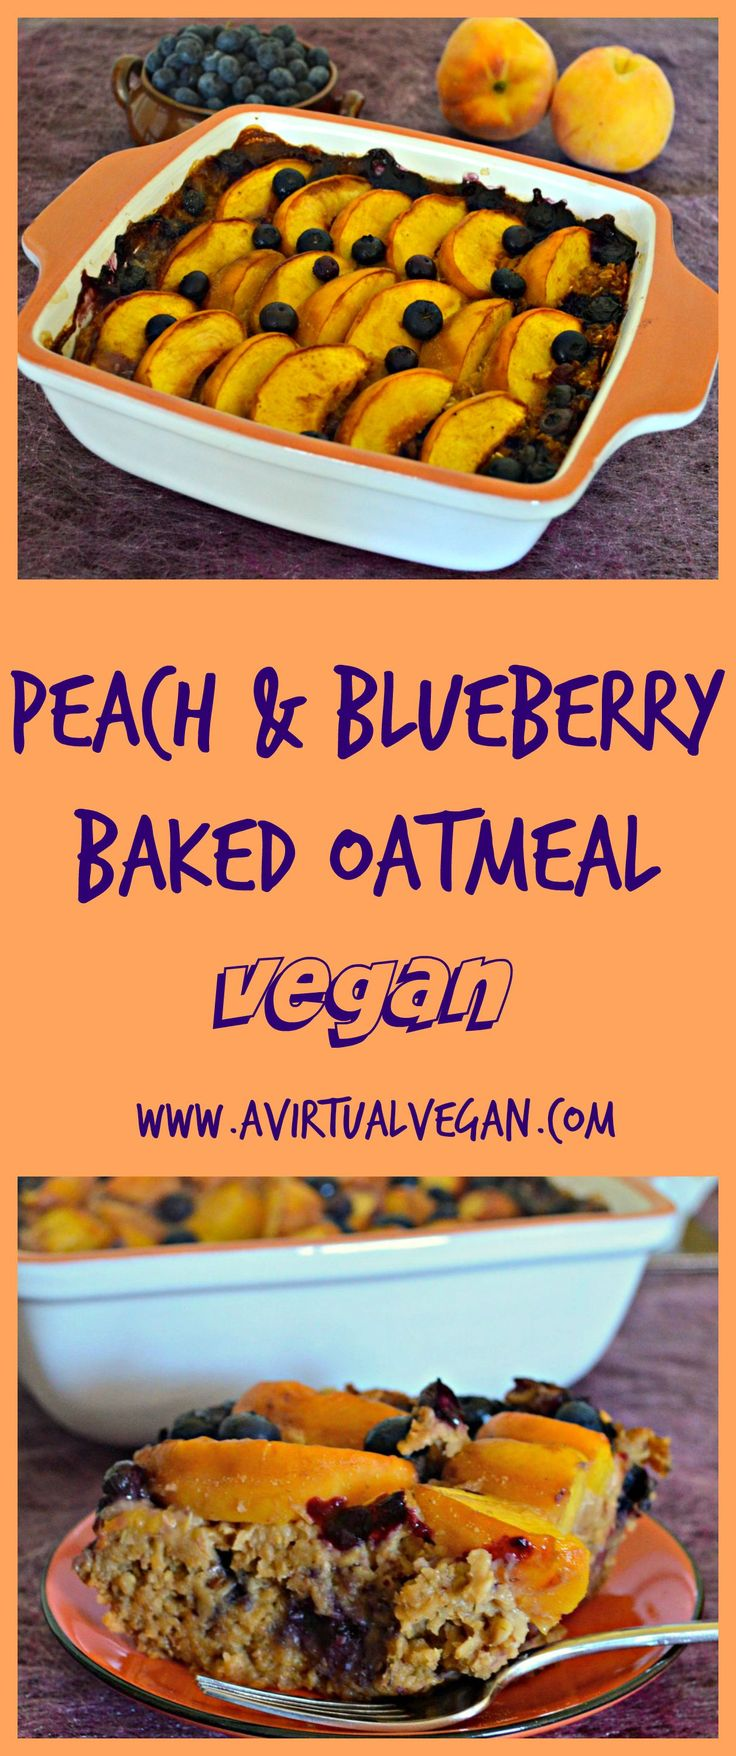 Sweet, juicy peaches and blueberries come together beautifully in this easy Peach & Blueberry Baked Oatmeal.